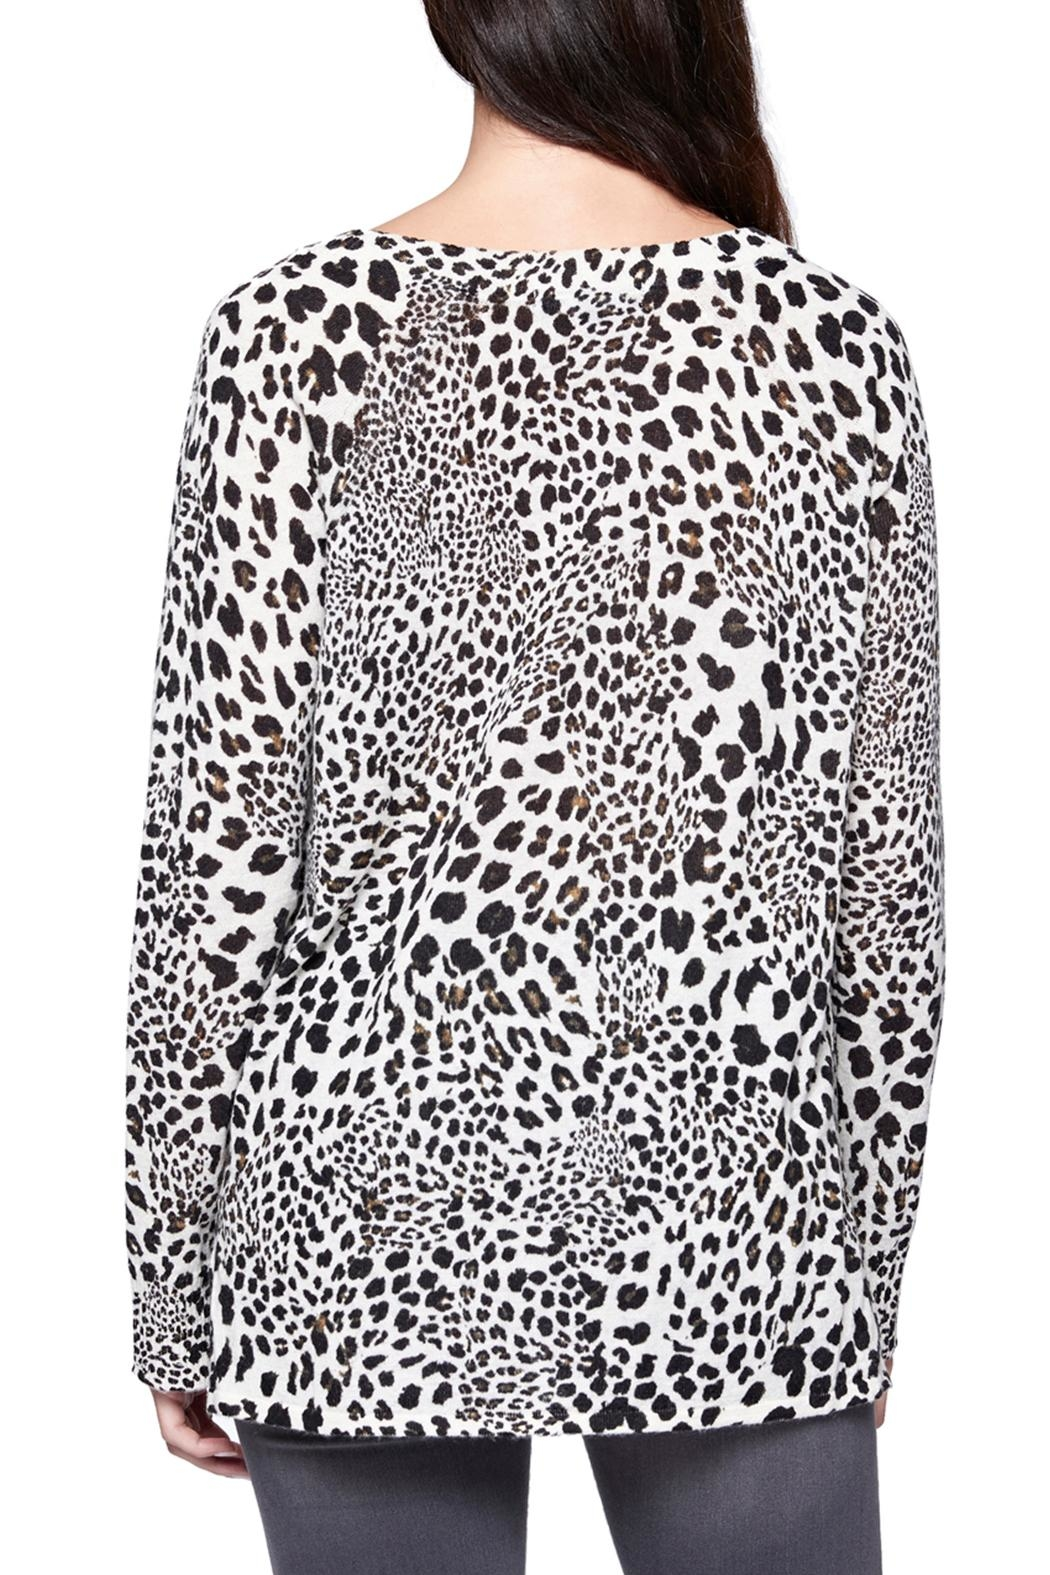 Sanctuary Leopard Crew Sweater - Back Cropped Image